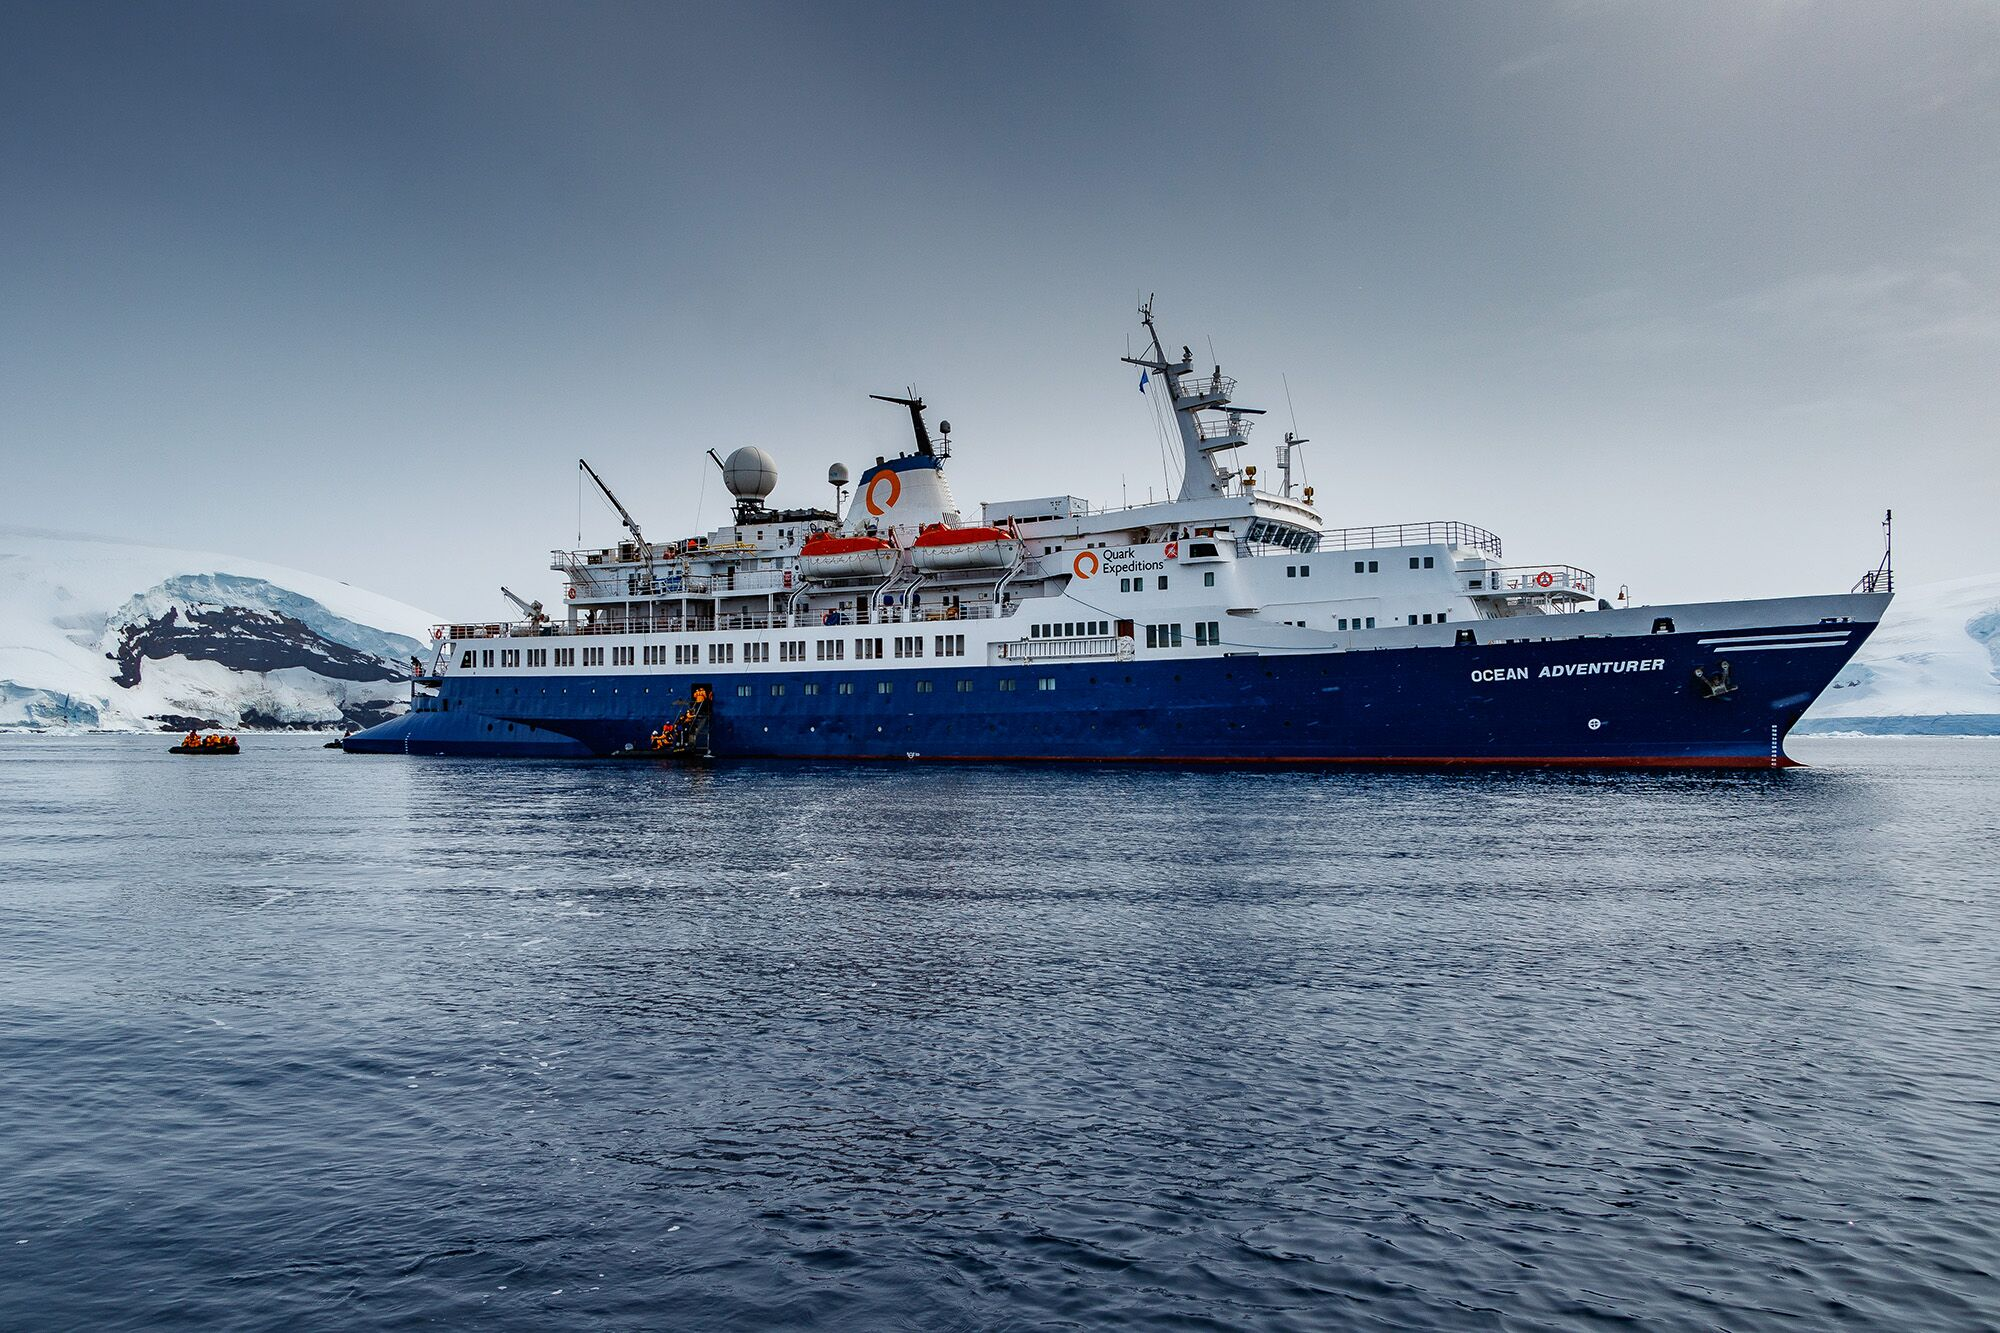 Ocean Adventurer, the ship servicing Circumnavigation of South Georgia with the Falkland Islands